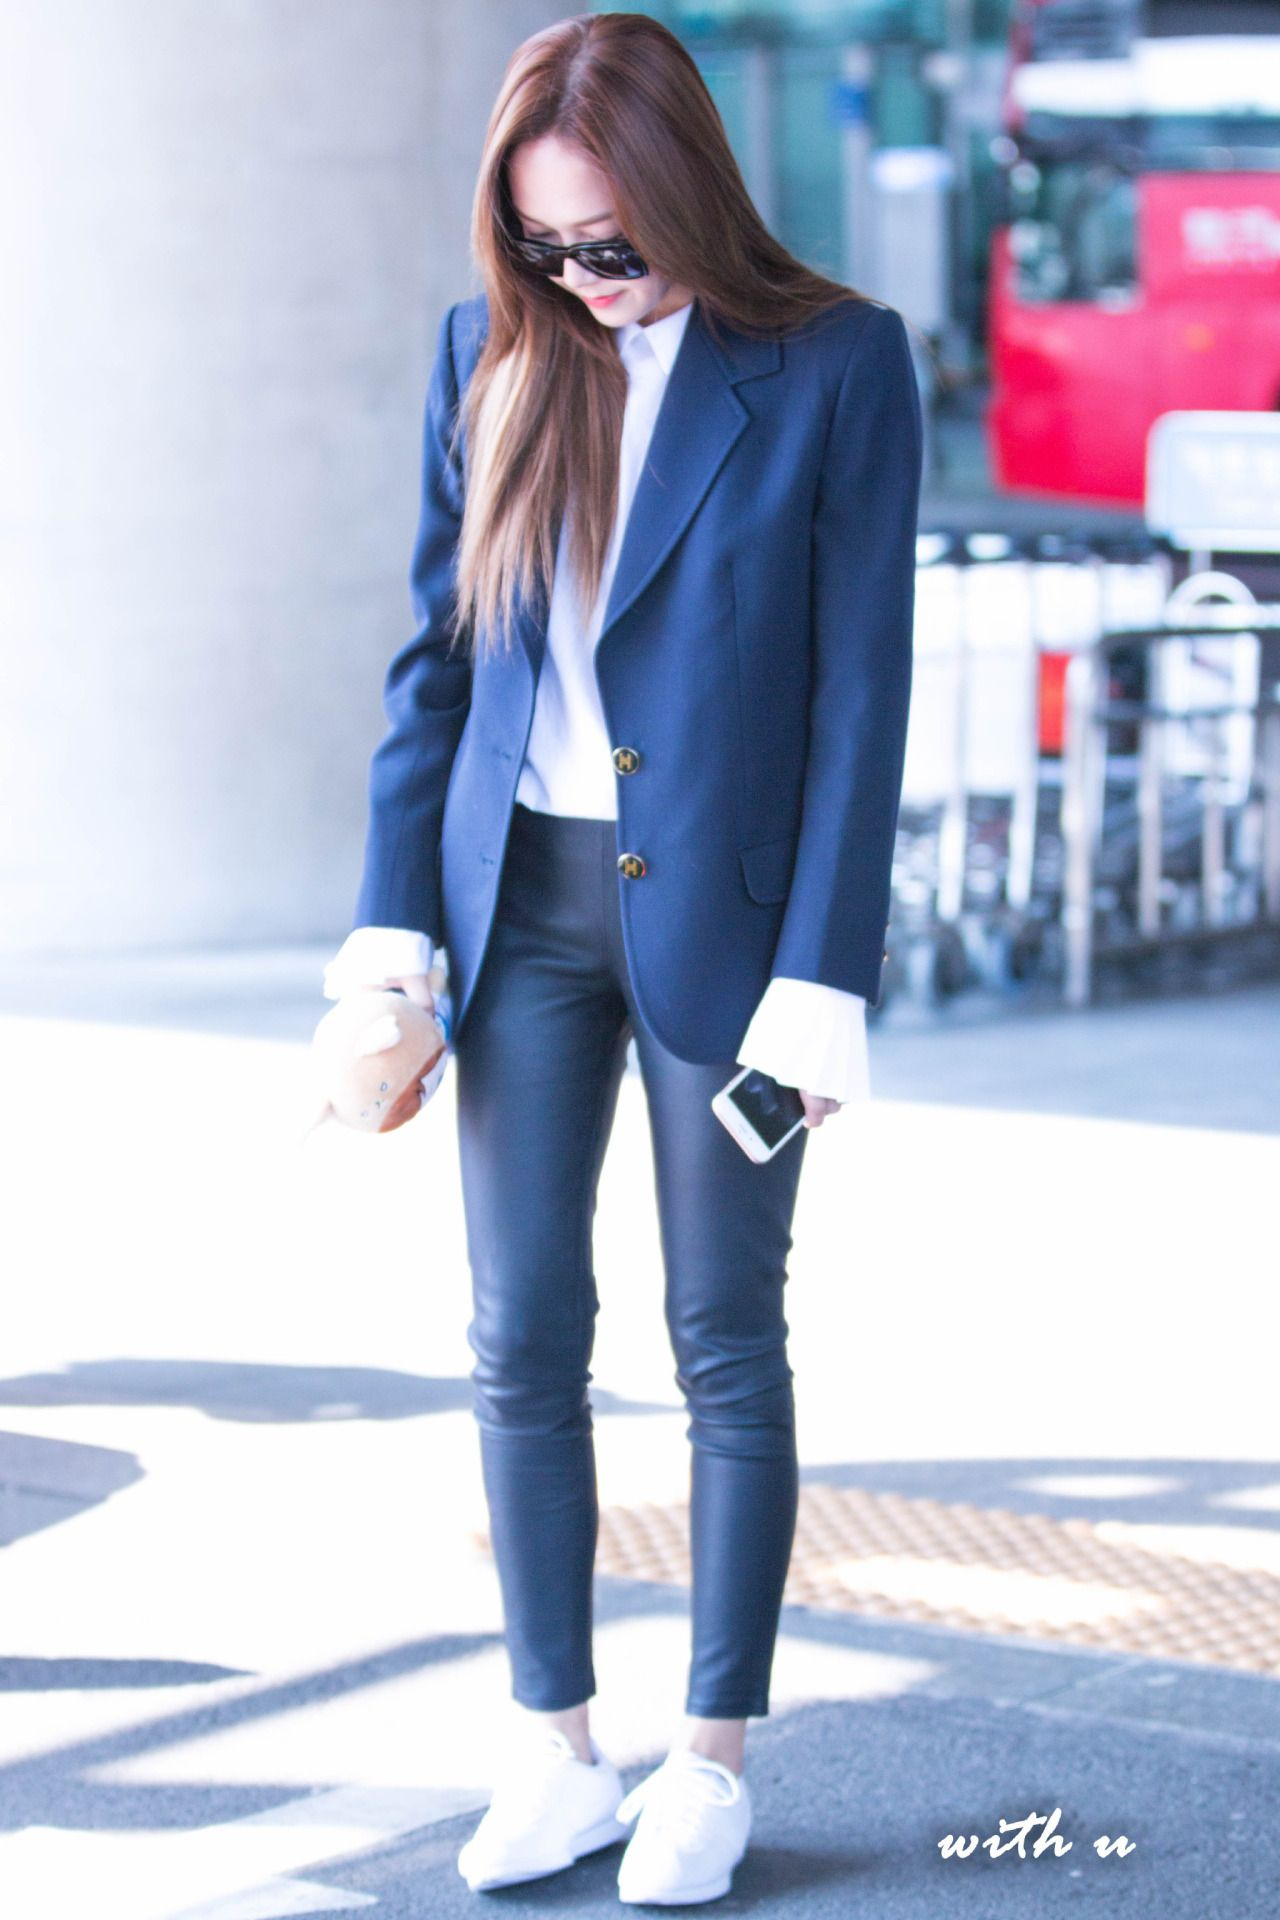 Xojessi Jessica Jung 39 S Airport Fashion Pinterest